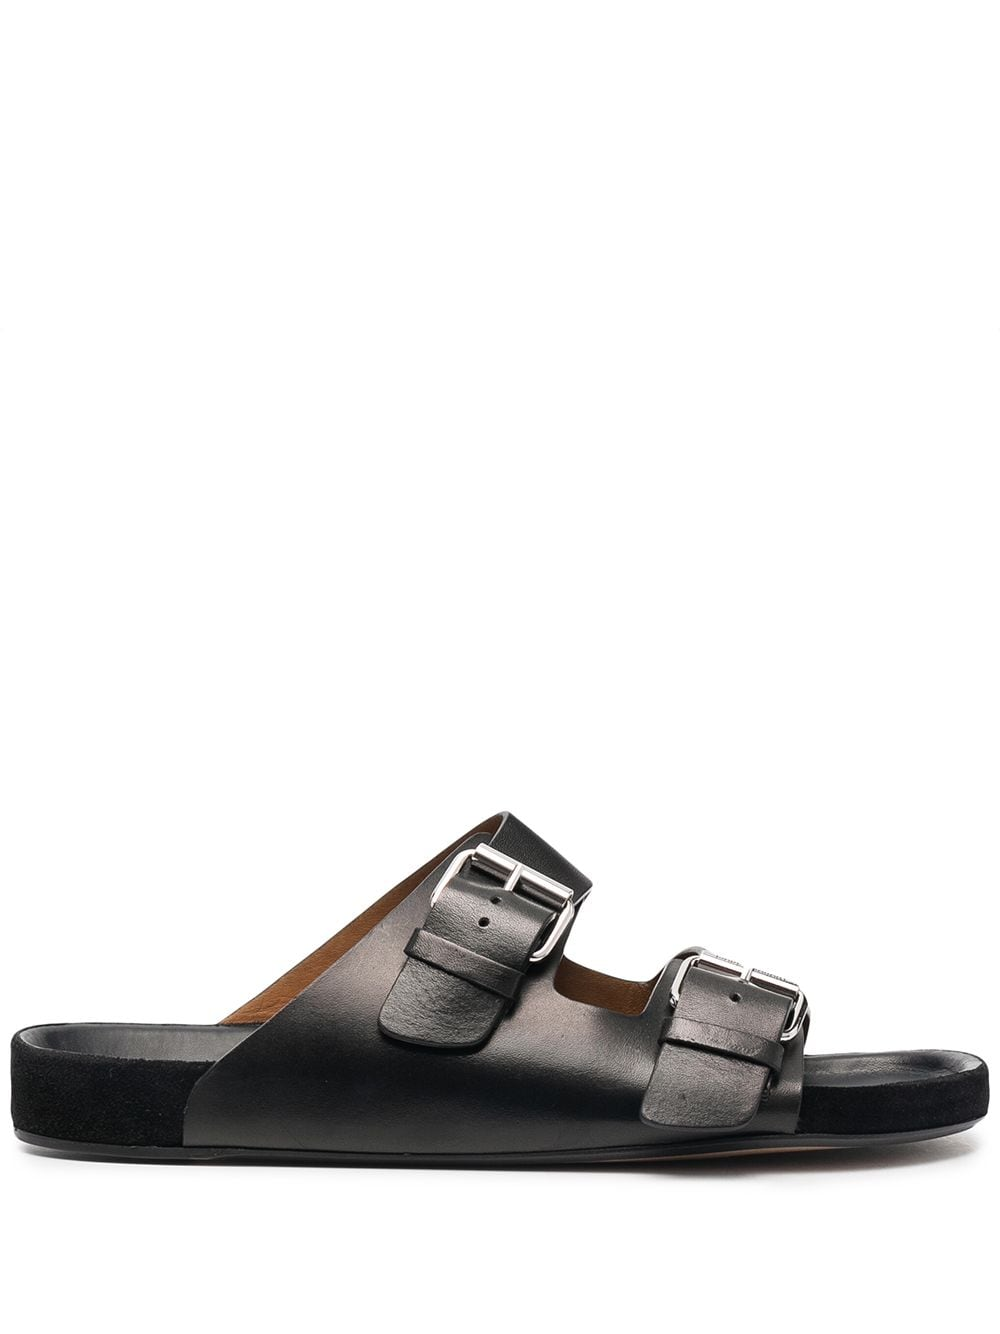 LEKSON SANDALS ISABEL MARANT | Sandals | SD0712-21P002N01BK